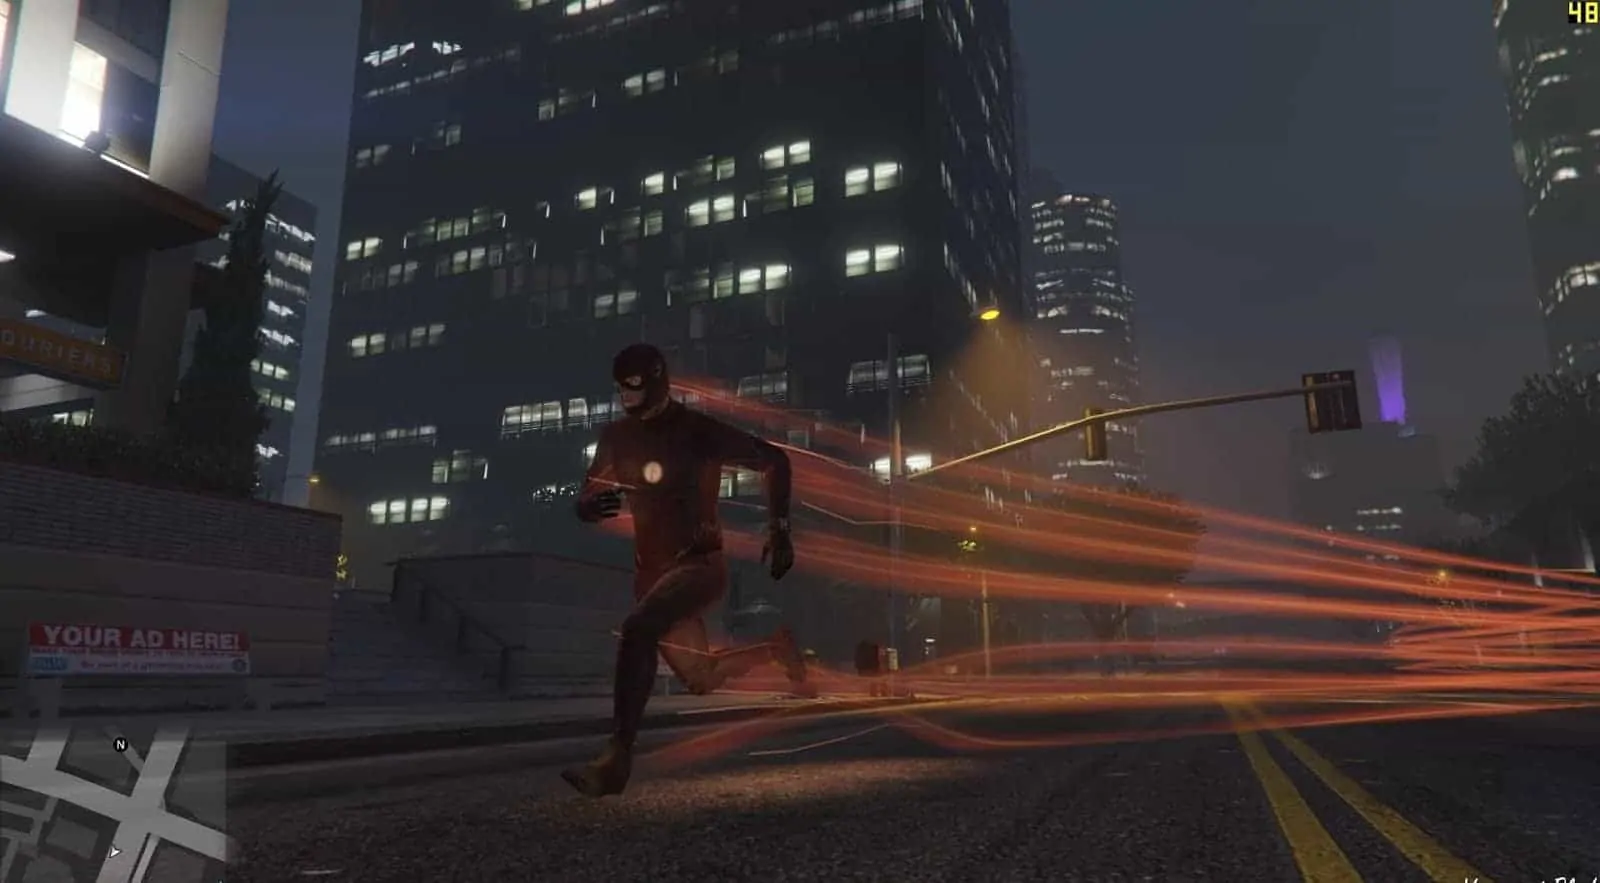 GTA V's Best Flash Mod Released - GTA BOOM